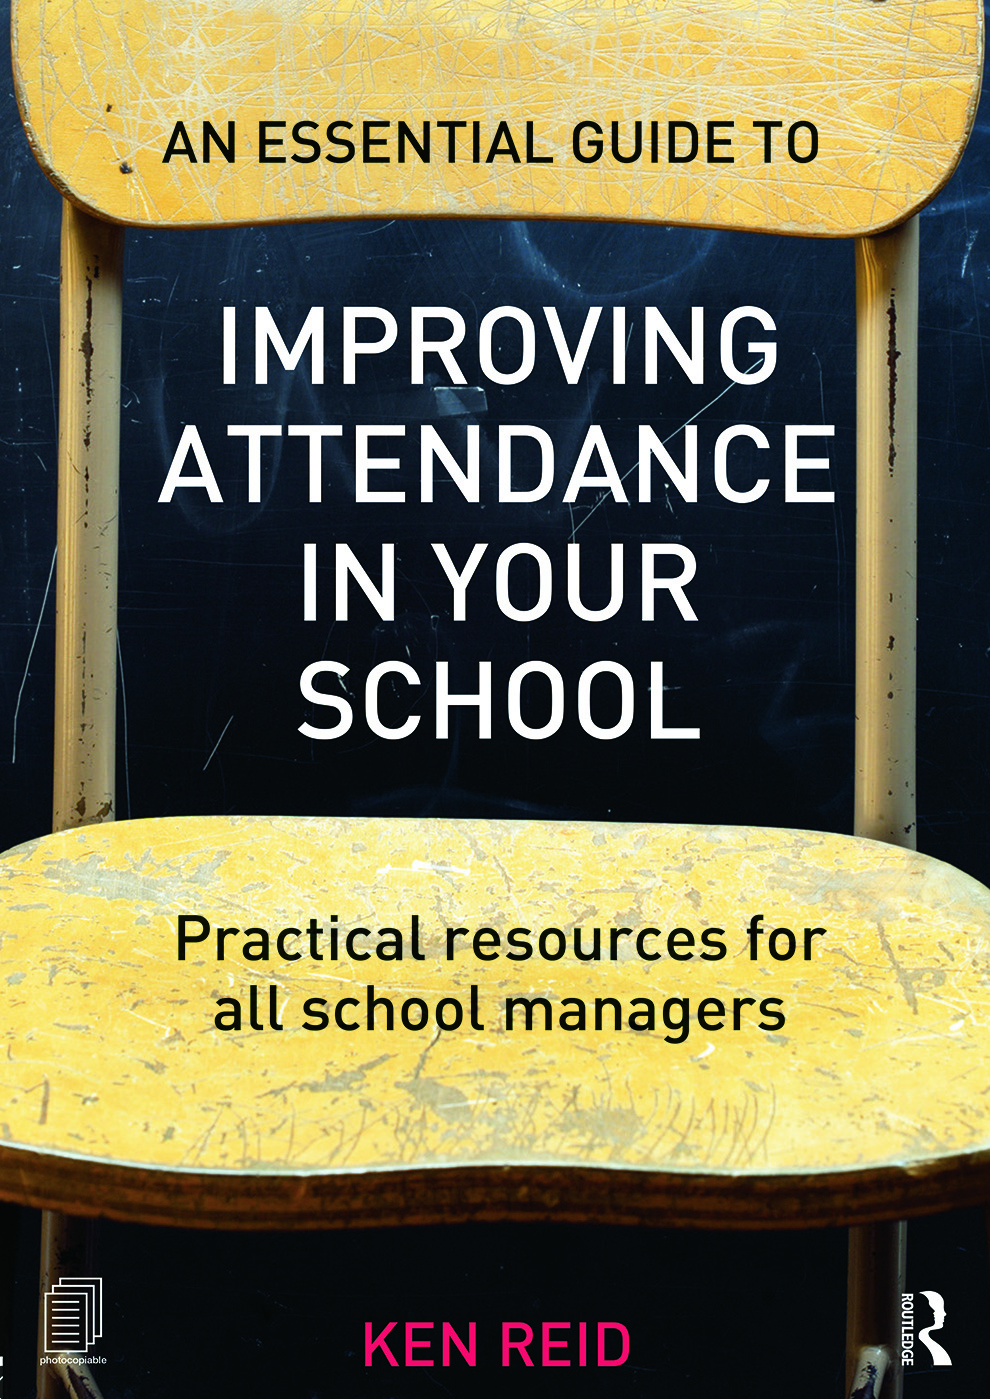 An Essential Guide to Improving Attendance in your School: Practical resources for all school managers (Paperback) book cover